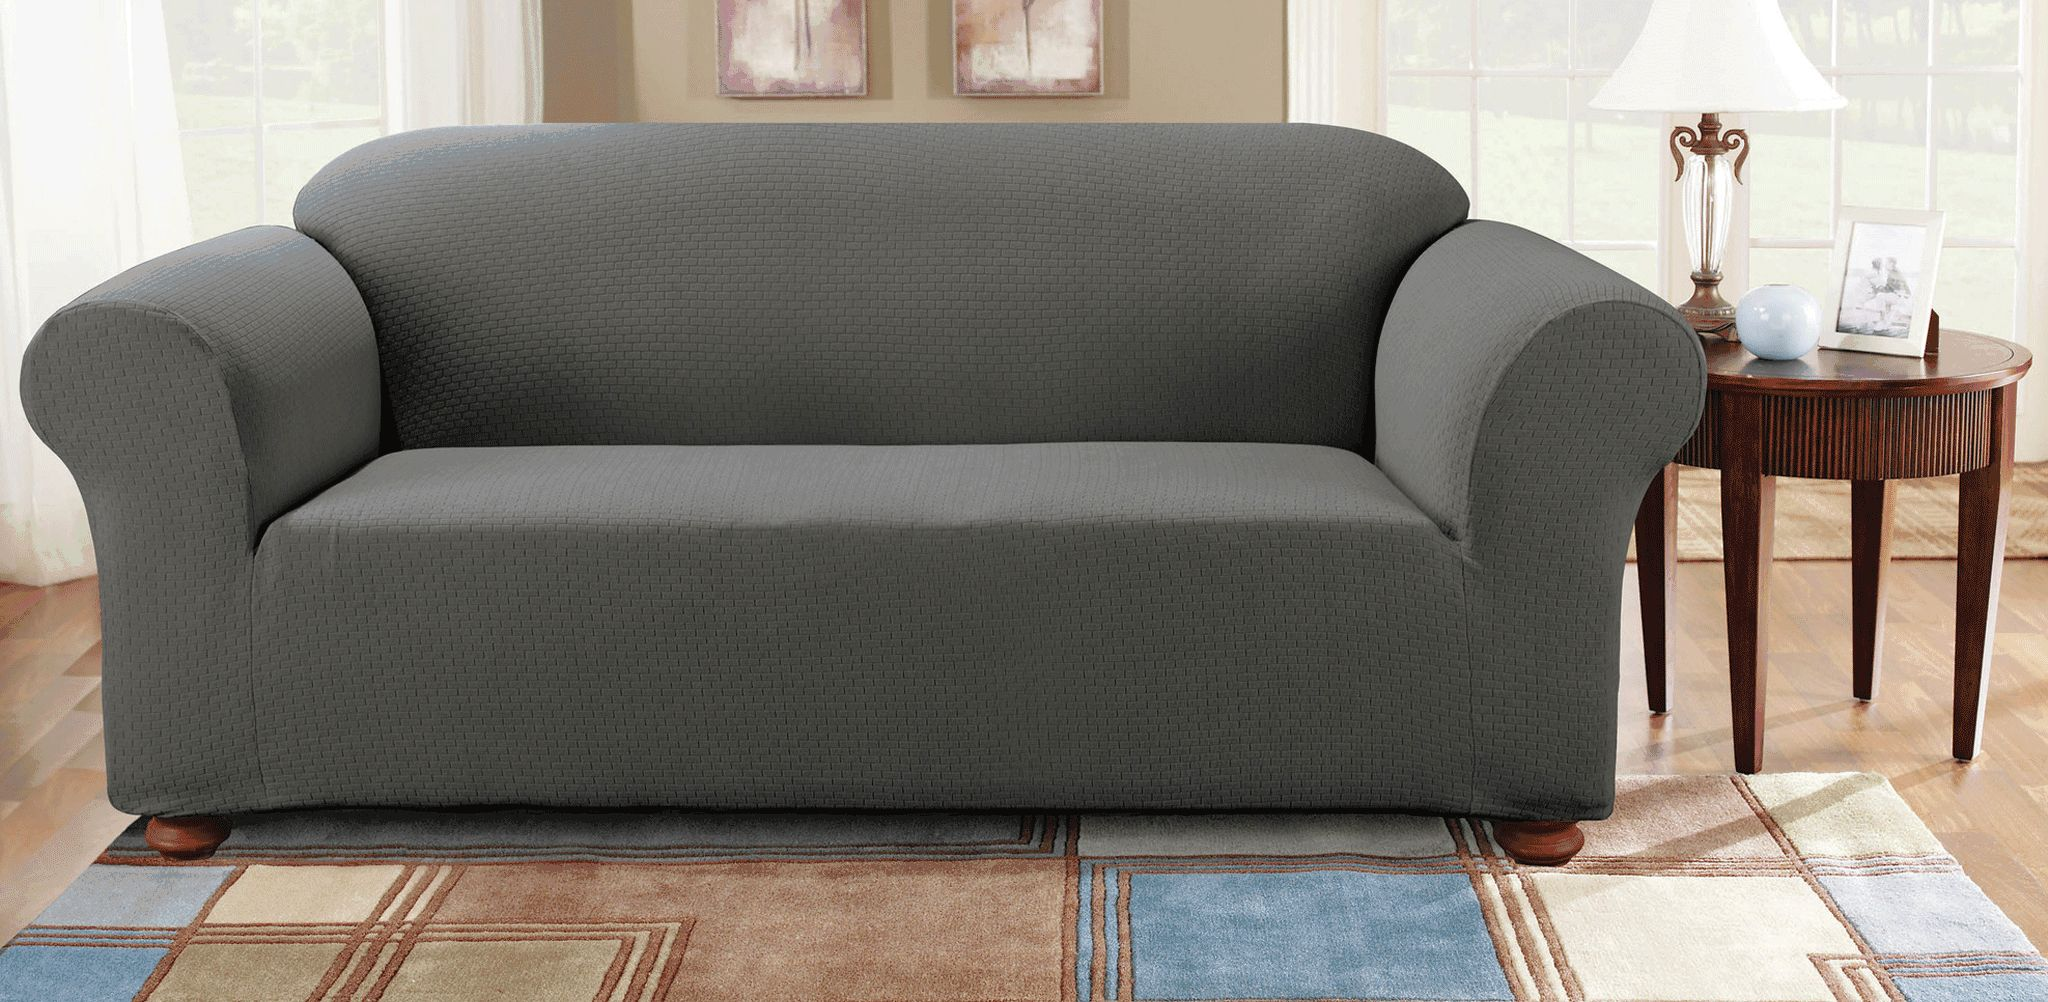 10 Where To Get Sofa Covers Most Of The Elegant As Well As Beautiful Cheap Sofas Latest Sofa Designs Loveseat Covers [ 1002 x 2048 Pixel ]